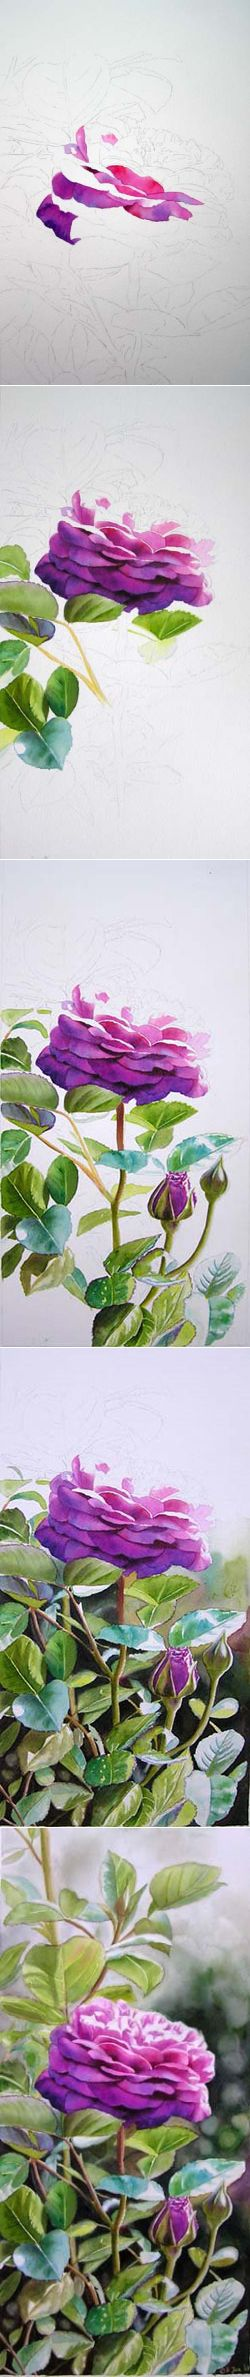 Painting Roses, Watercolor art instruction